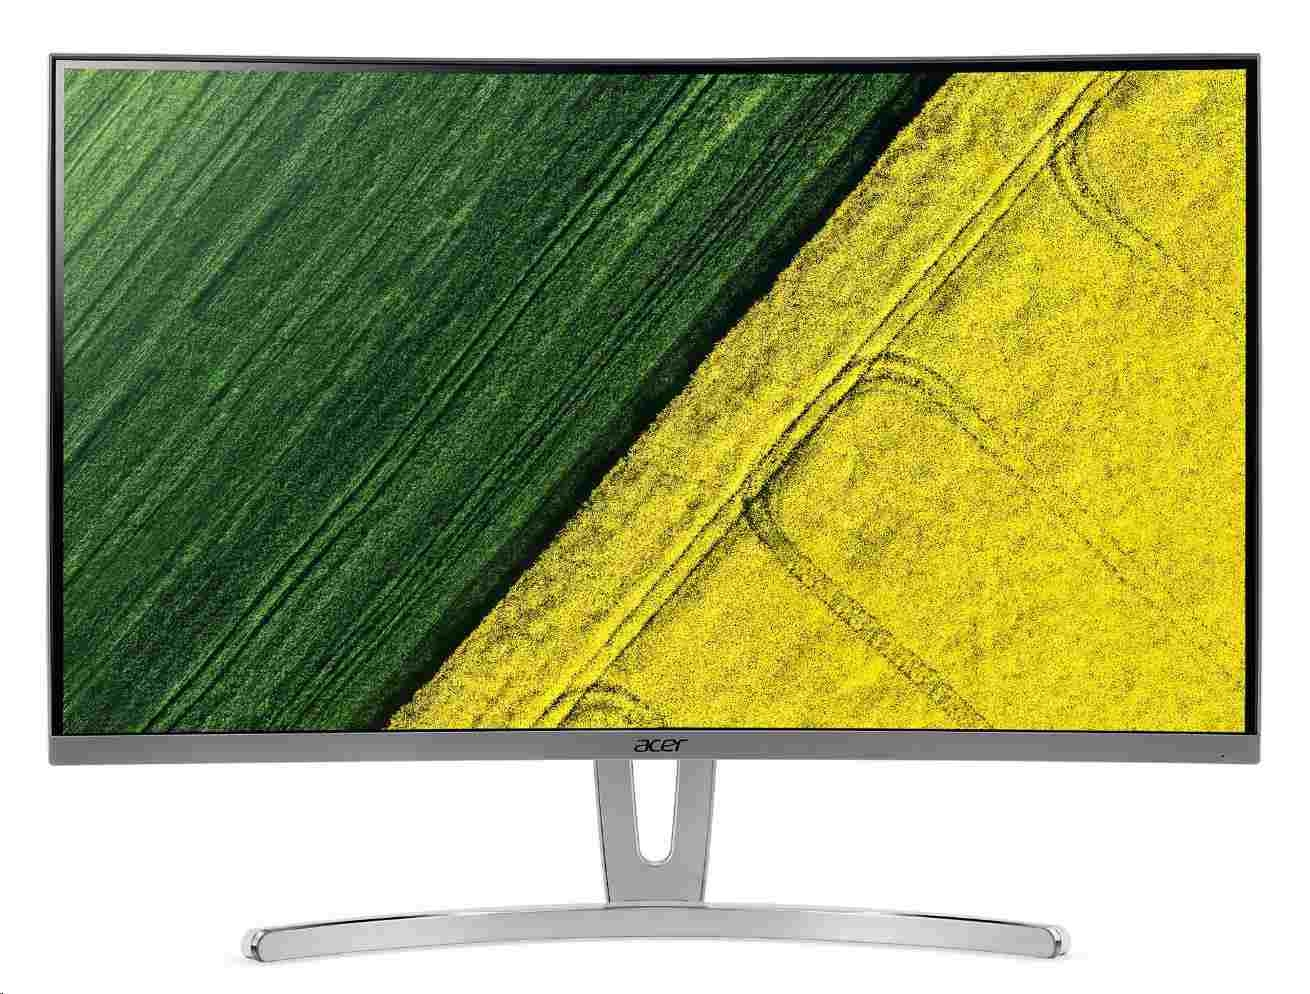 """ACER LCD ED273Awidpx, 69cm (27"""") LED Curved, FHD 1920x1080@144Hz, 100M:1, 250cd/m2, 178°/178°, 4ms, DVI, HDMI, DP, Audio"""